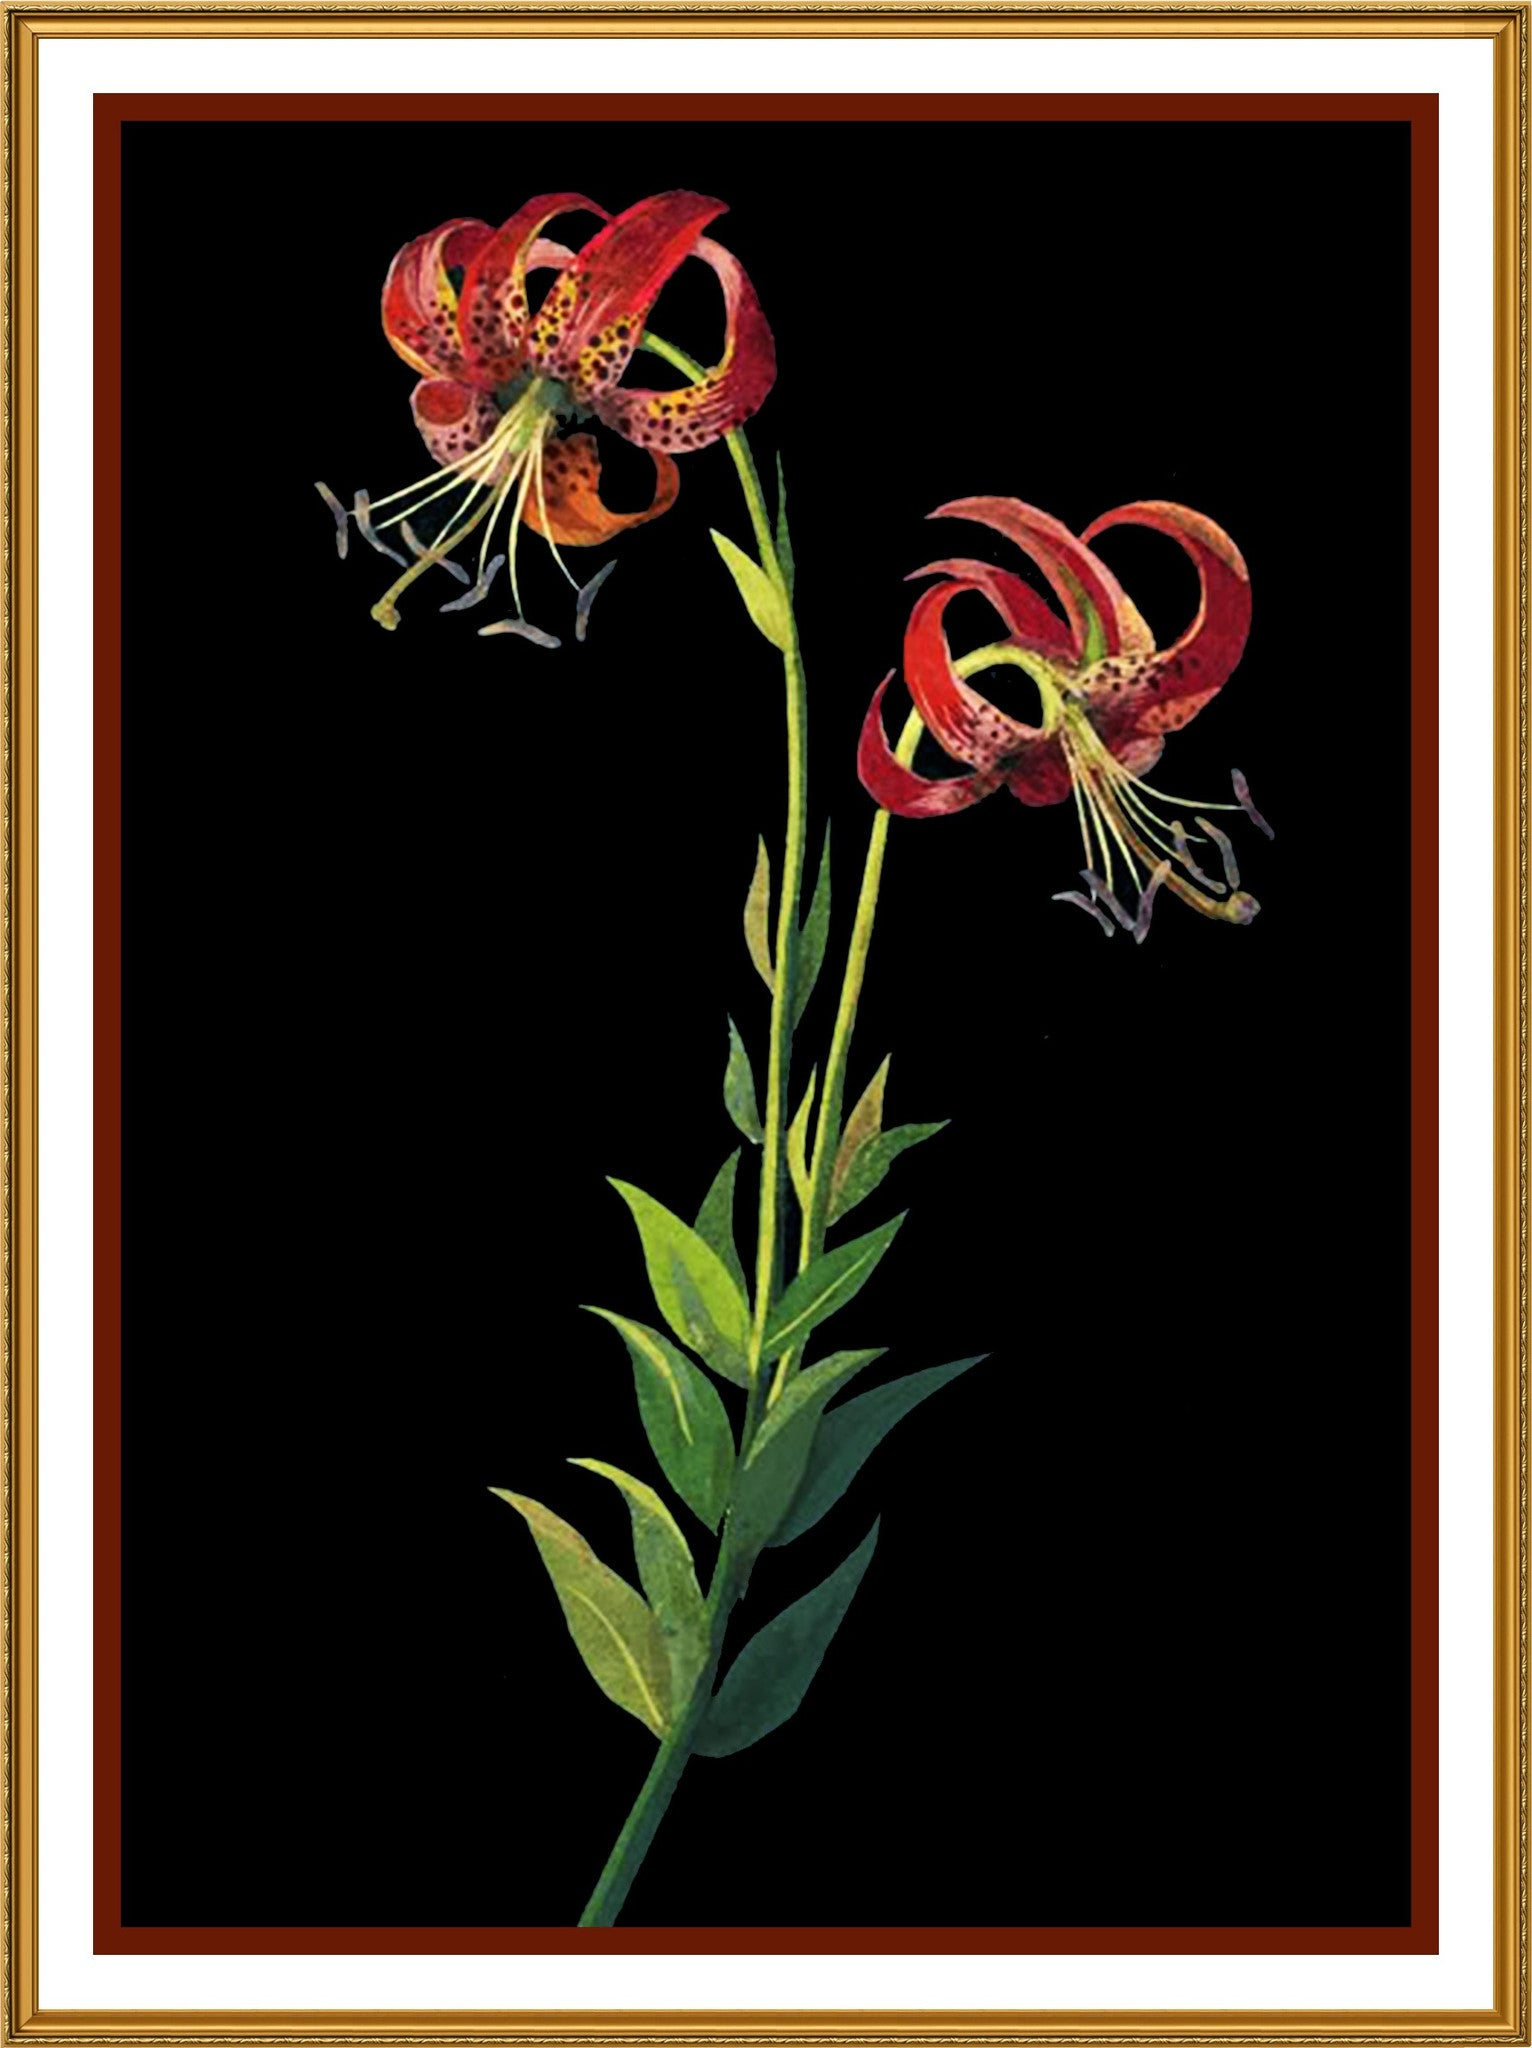 Tiger lily flowers by mary delany counted cross stitch or counted tiger lily flowers by mary delany counted cross stitch or counted needlepoint pattern izmirmasajfo